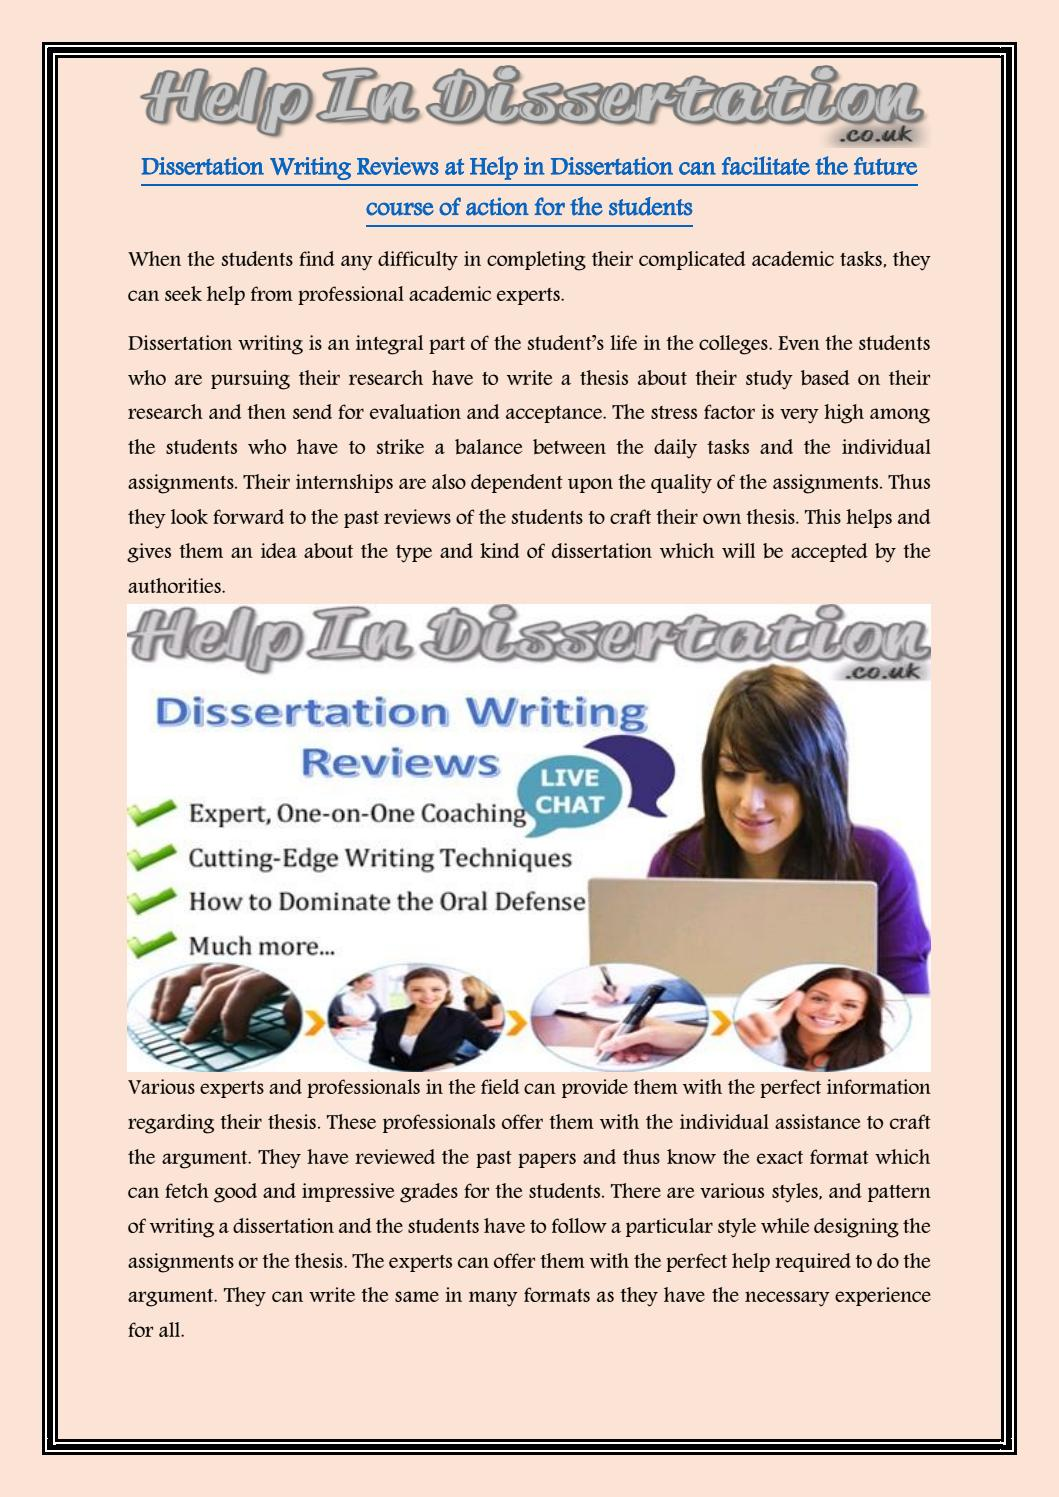 How to Write a Dissertation Literature Review Step-by-Step